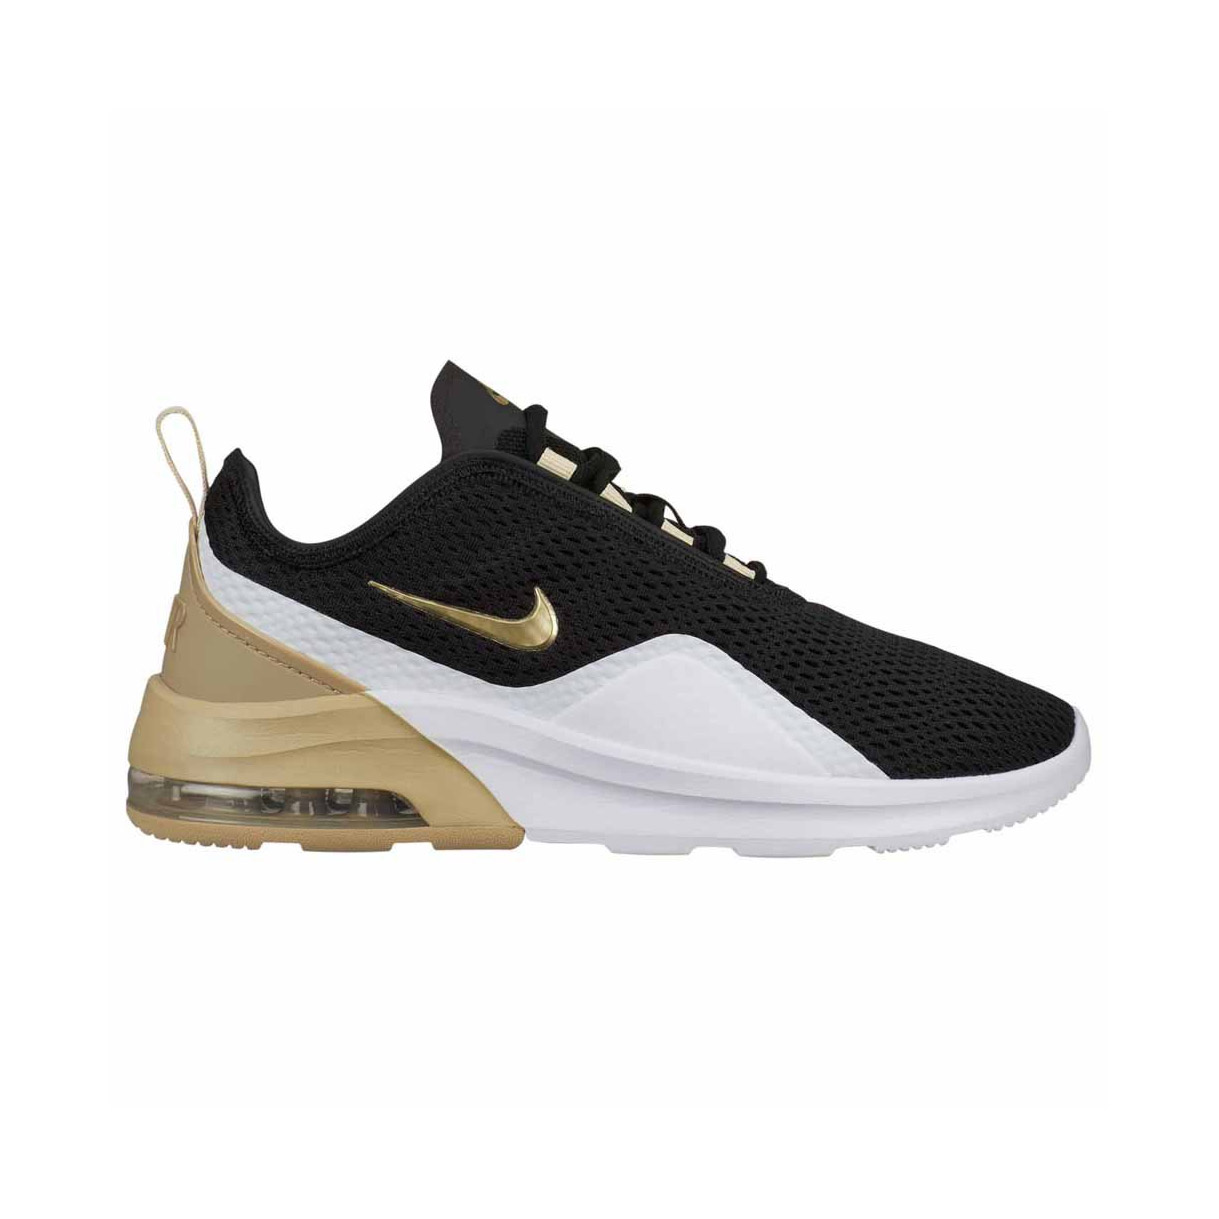 best website ff5a2 d2f0e Nike Womens Air Max Motion 2 Trainers Black Gold Star